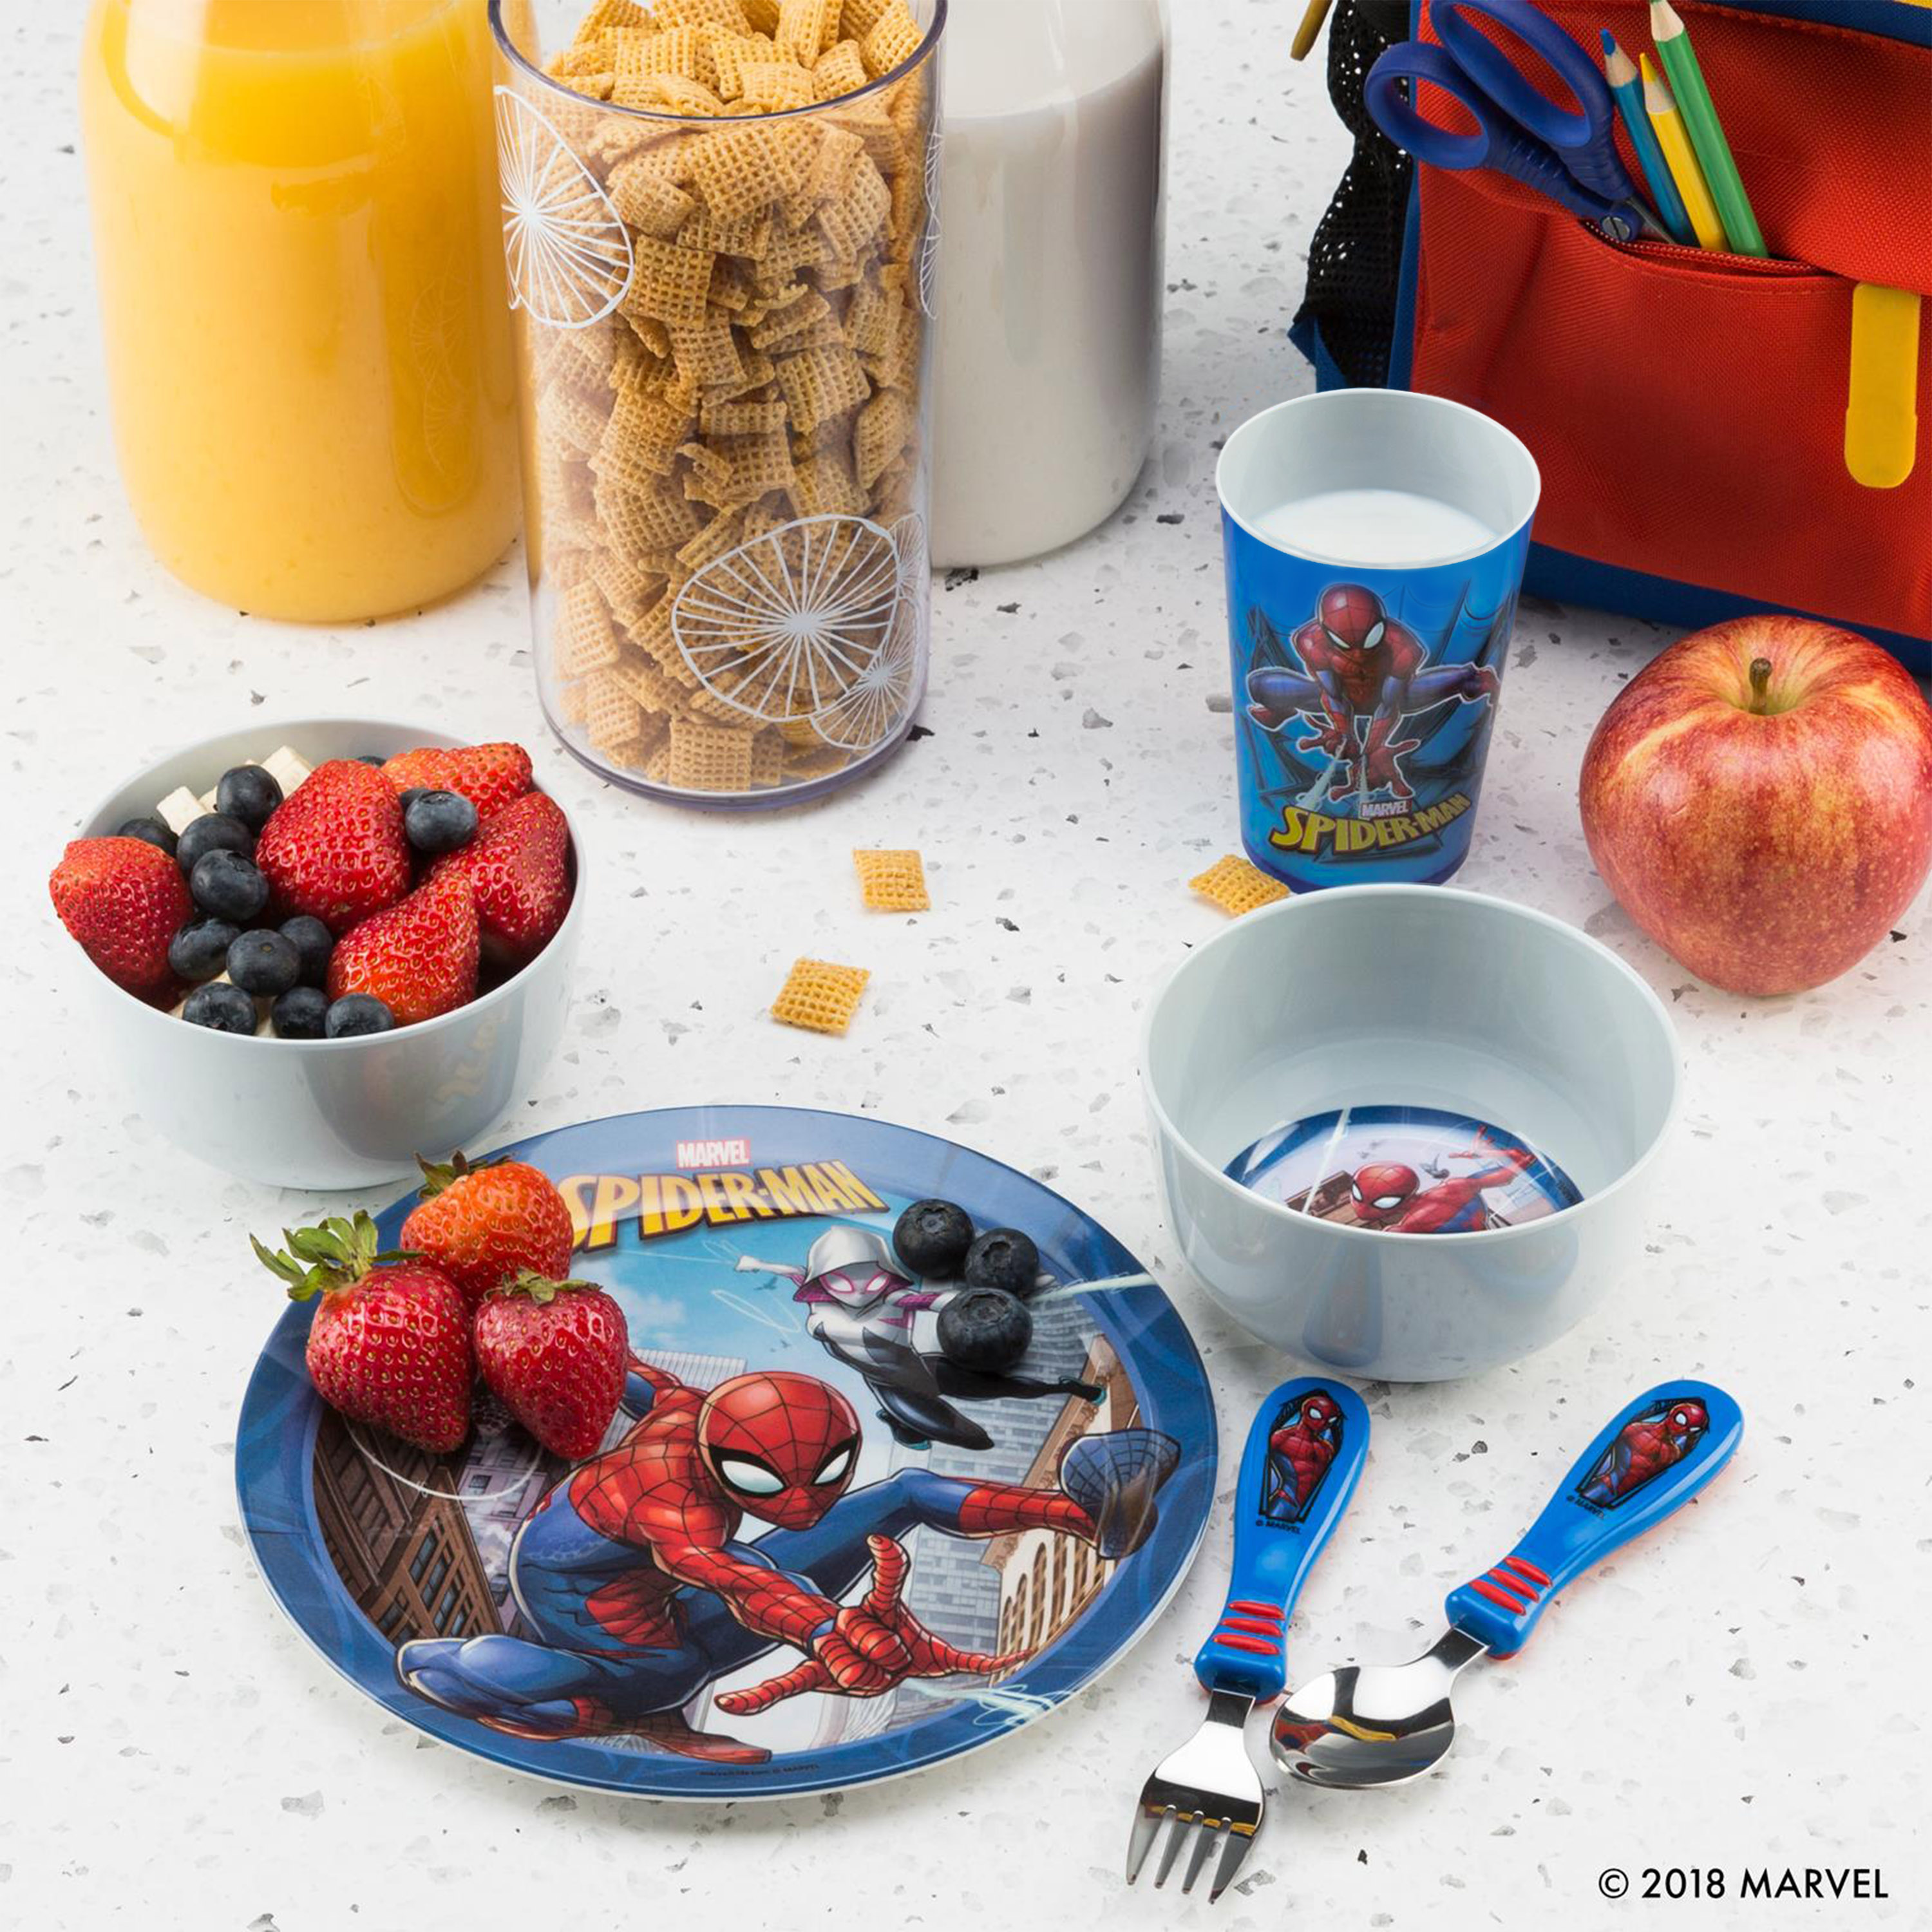 Marvel Comics Kid's Flatware, Spider-Man, 2-piece set slideshow image 8